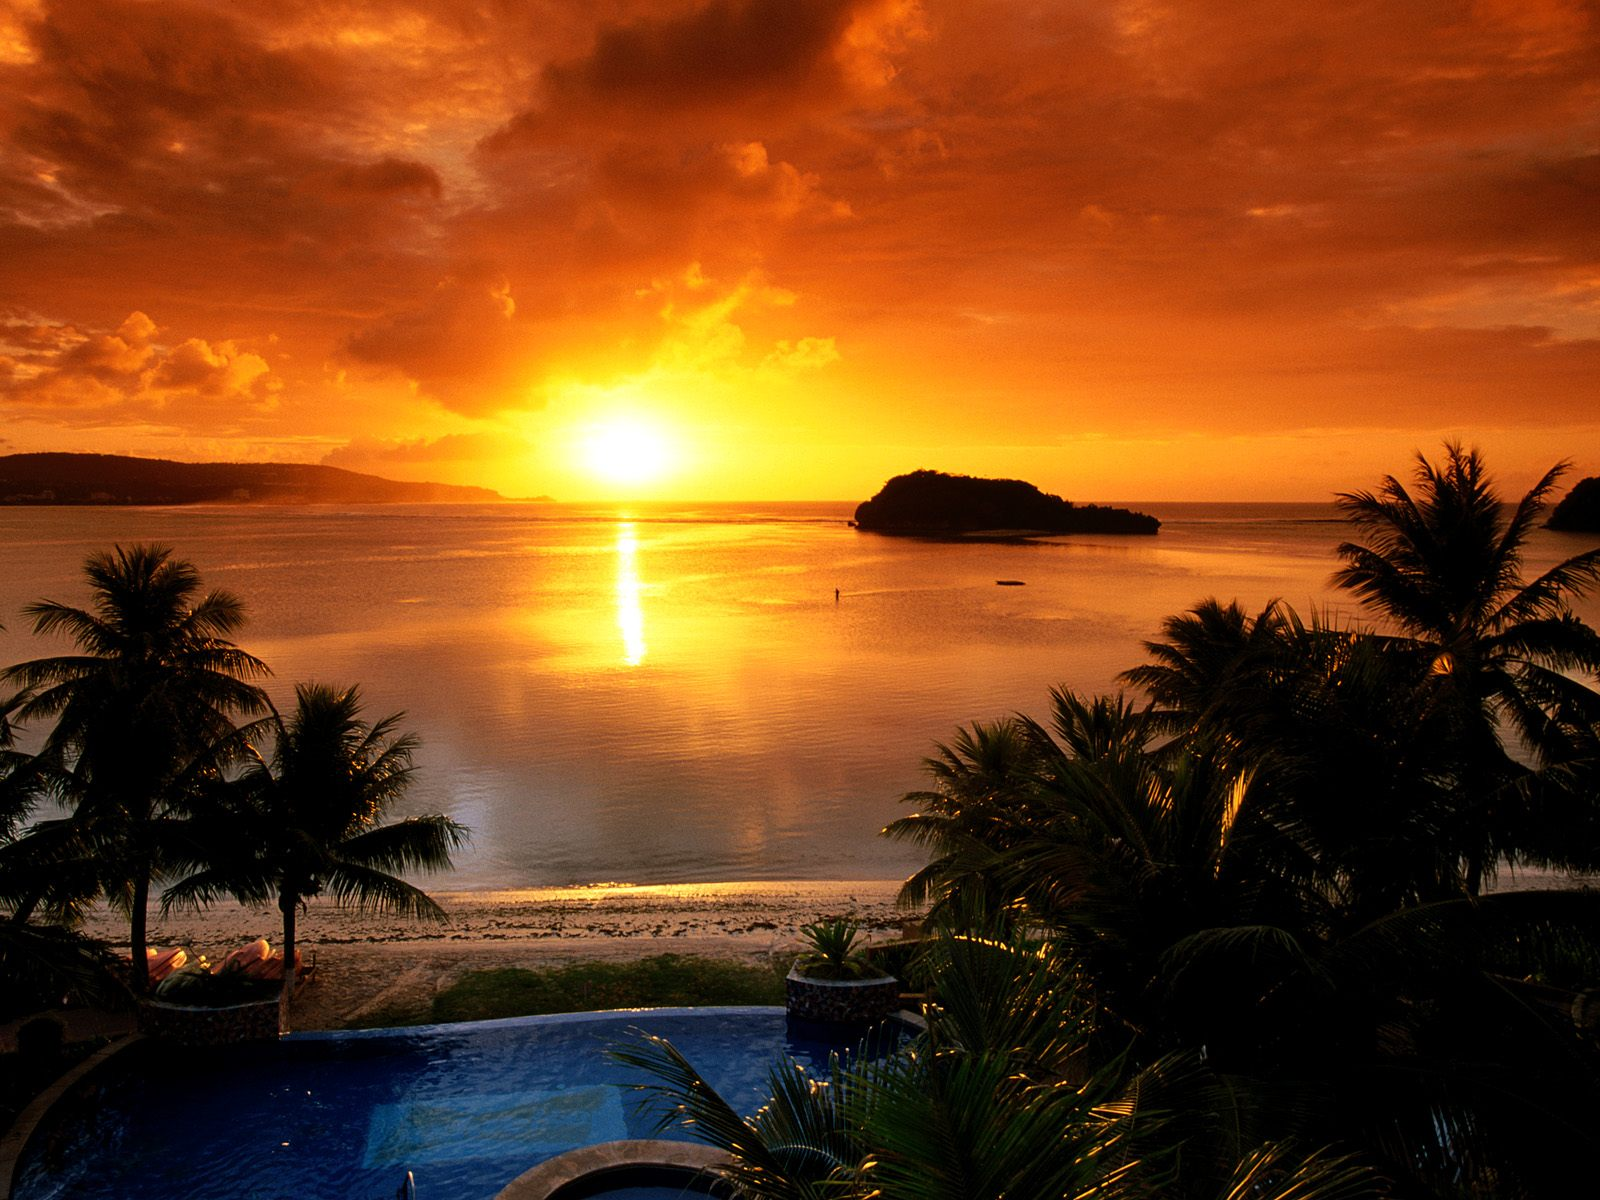 http://4.bp.blogspot.com/-QDDuNxnrHWU/Tkz0mUMYprI/AAAAAAAAFOM/wQNyWjskDok/s1600/Beautiful-Sunrise-Wallpaper.jpg